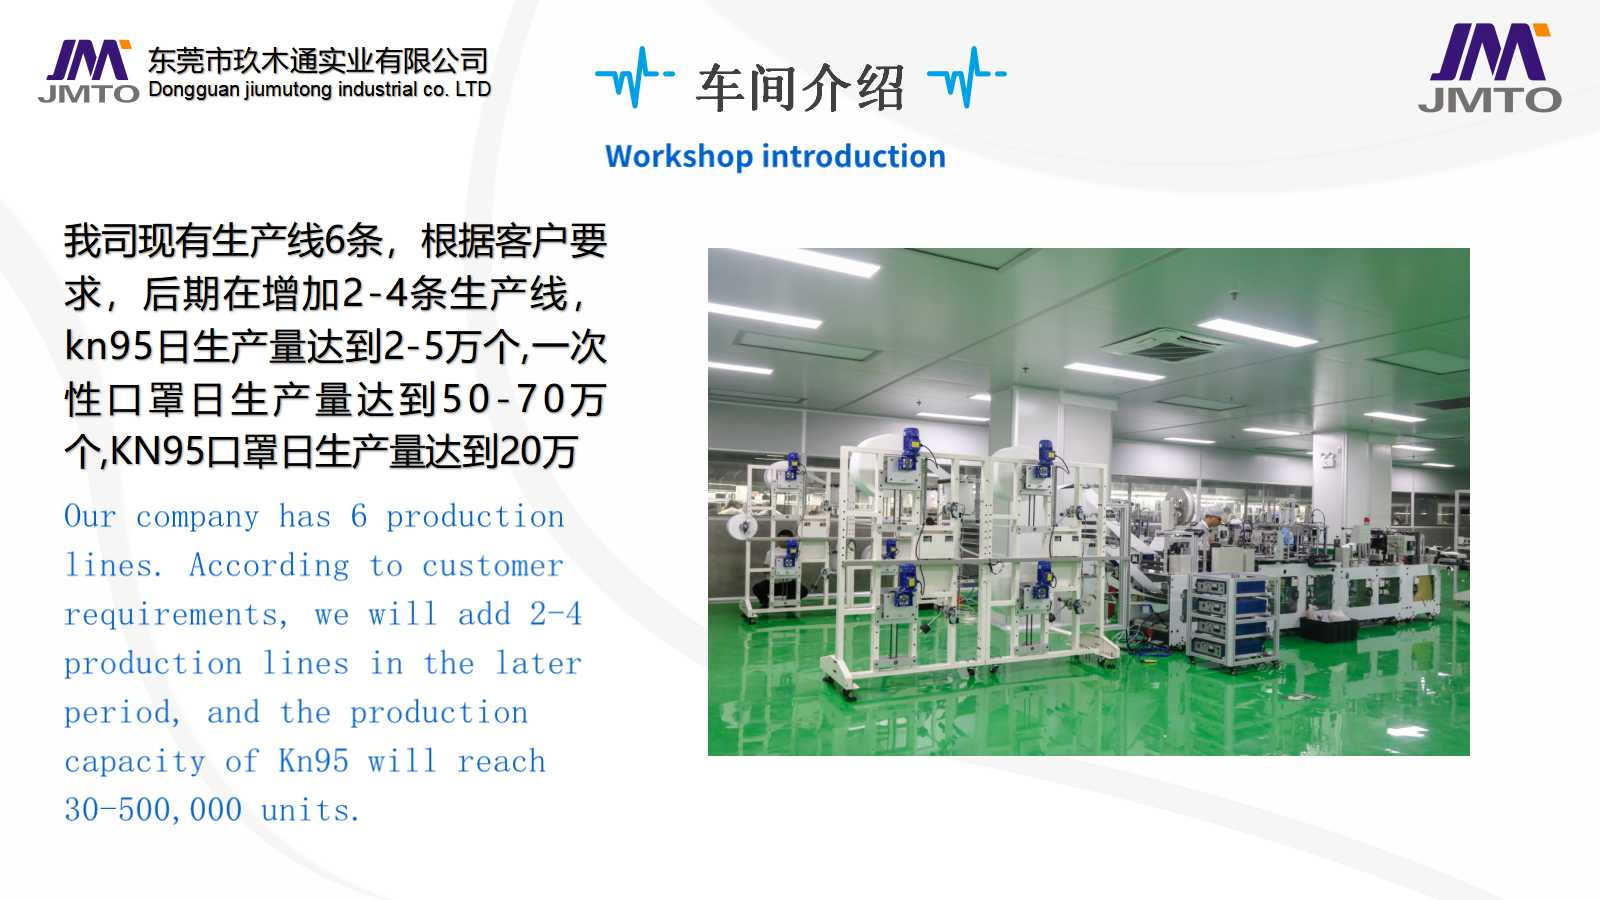 Dongguan Jiumutong Industrial Co., LTD. Maskeninformation Kurier